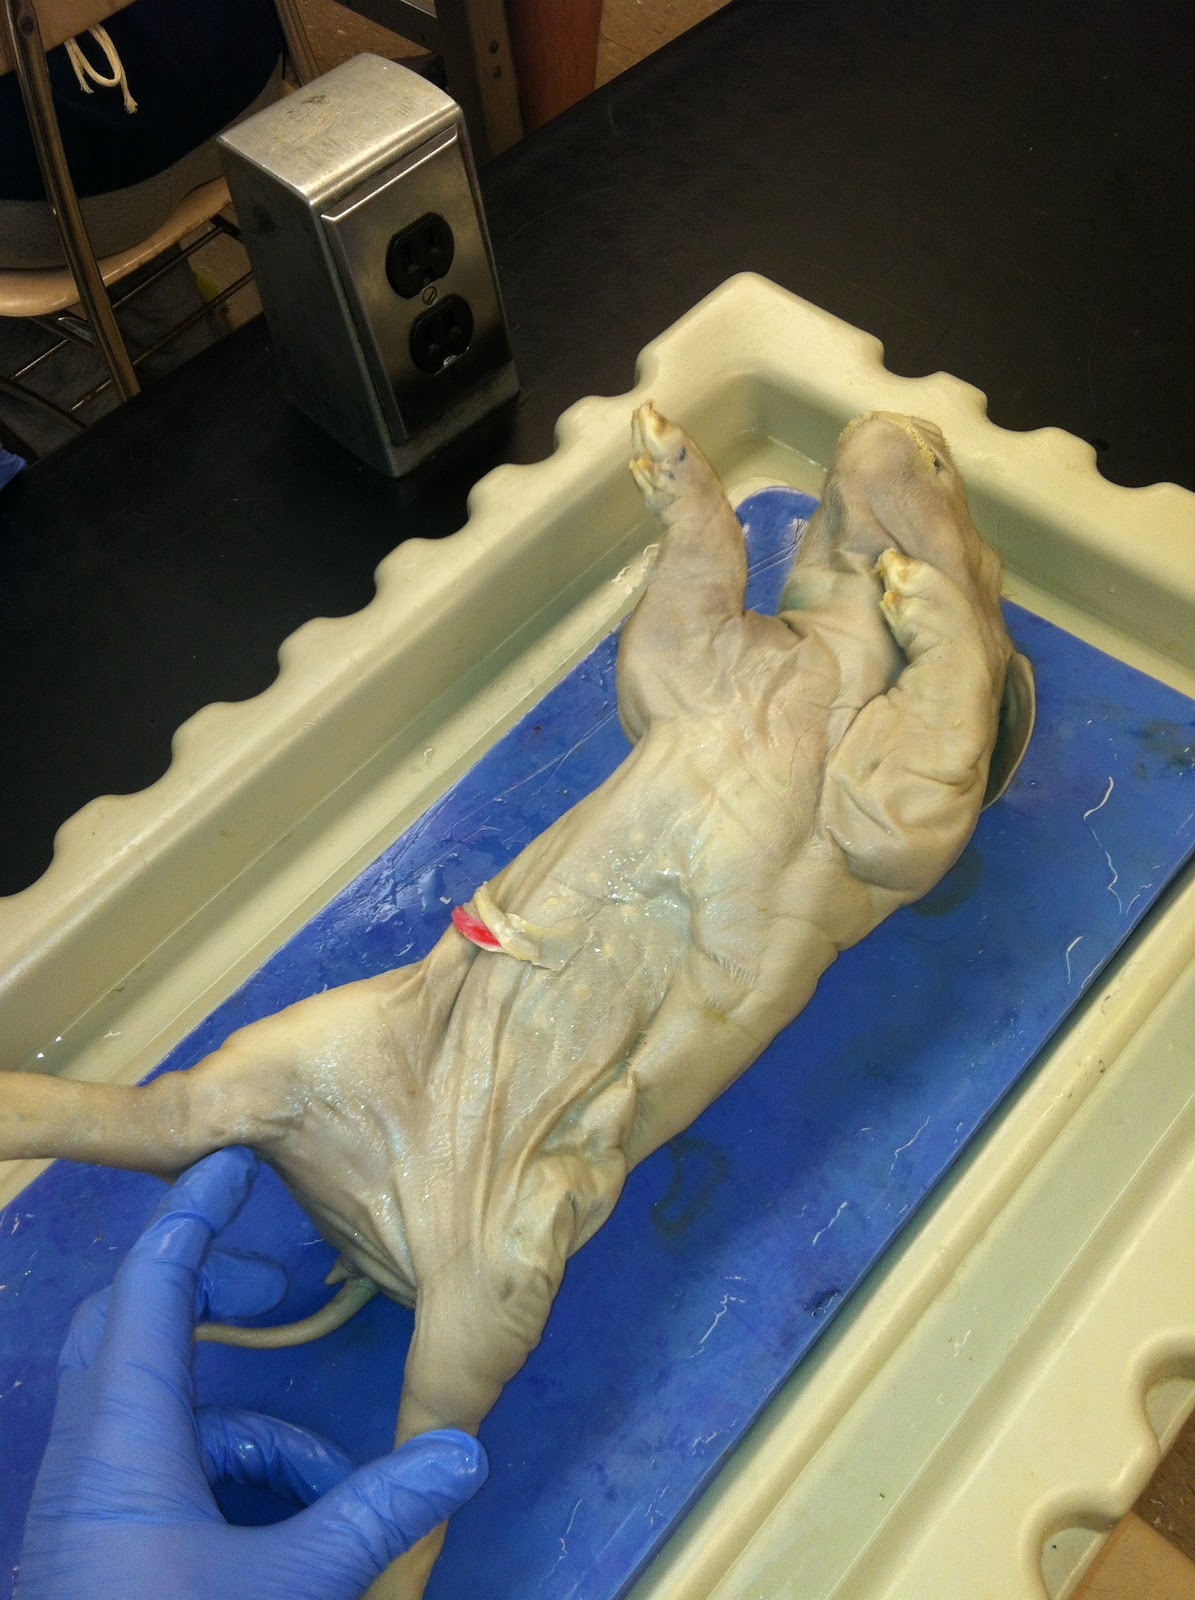 Janeliza\'s Dissection Project: External Anatomy of Fetal Pig